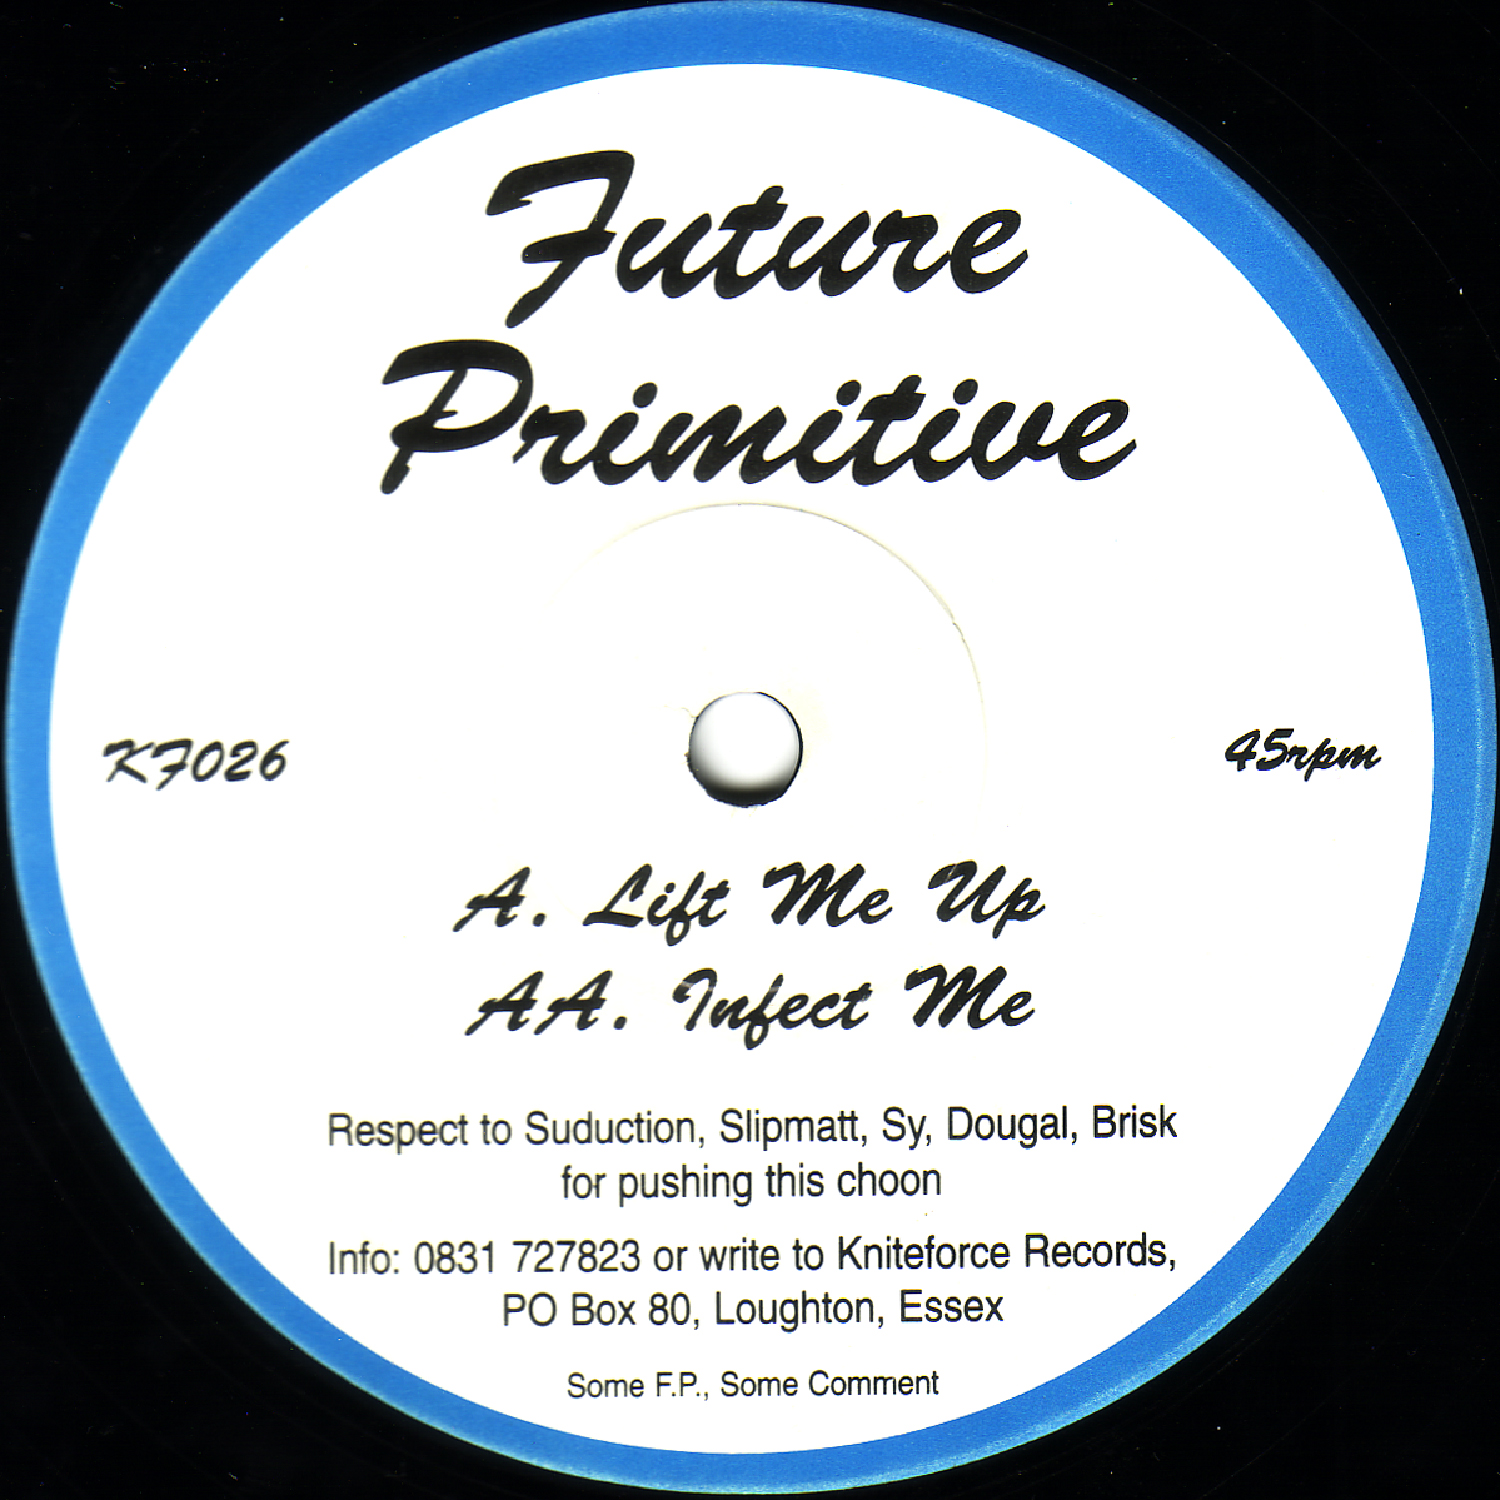 [KF026] Future Primitive - Lift Me Up EP (Digital Only)